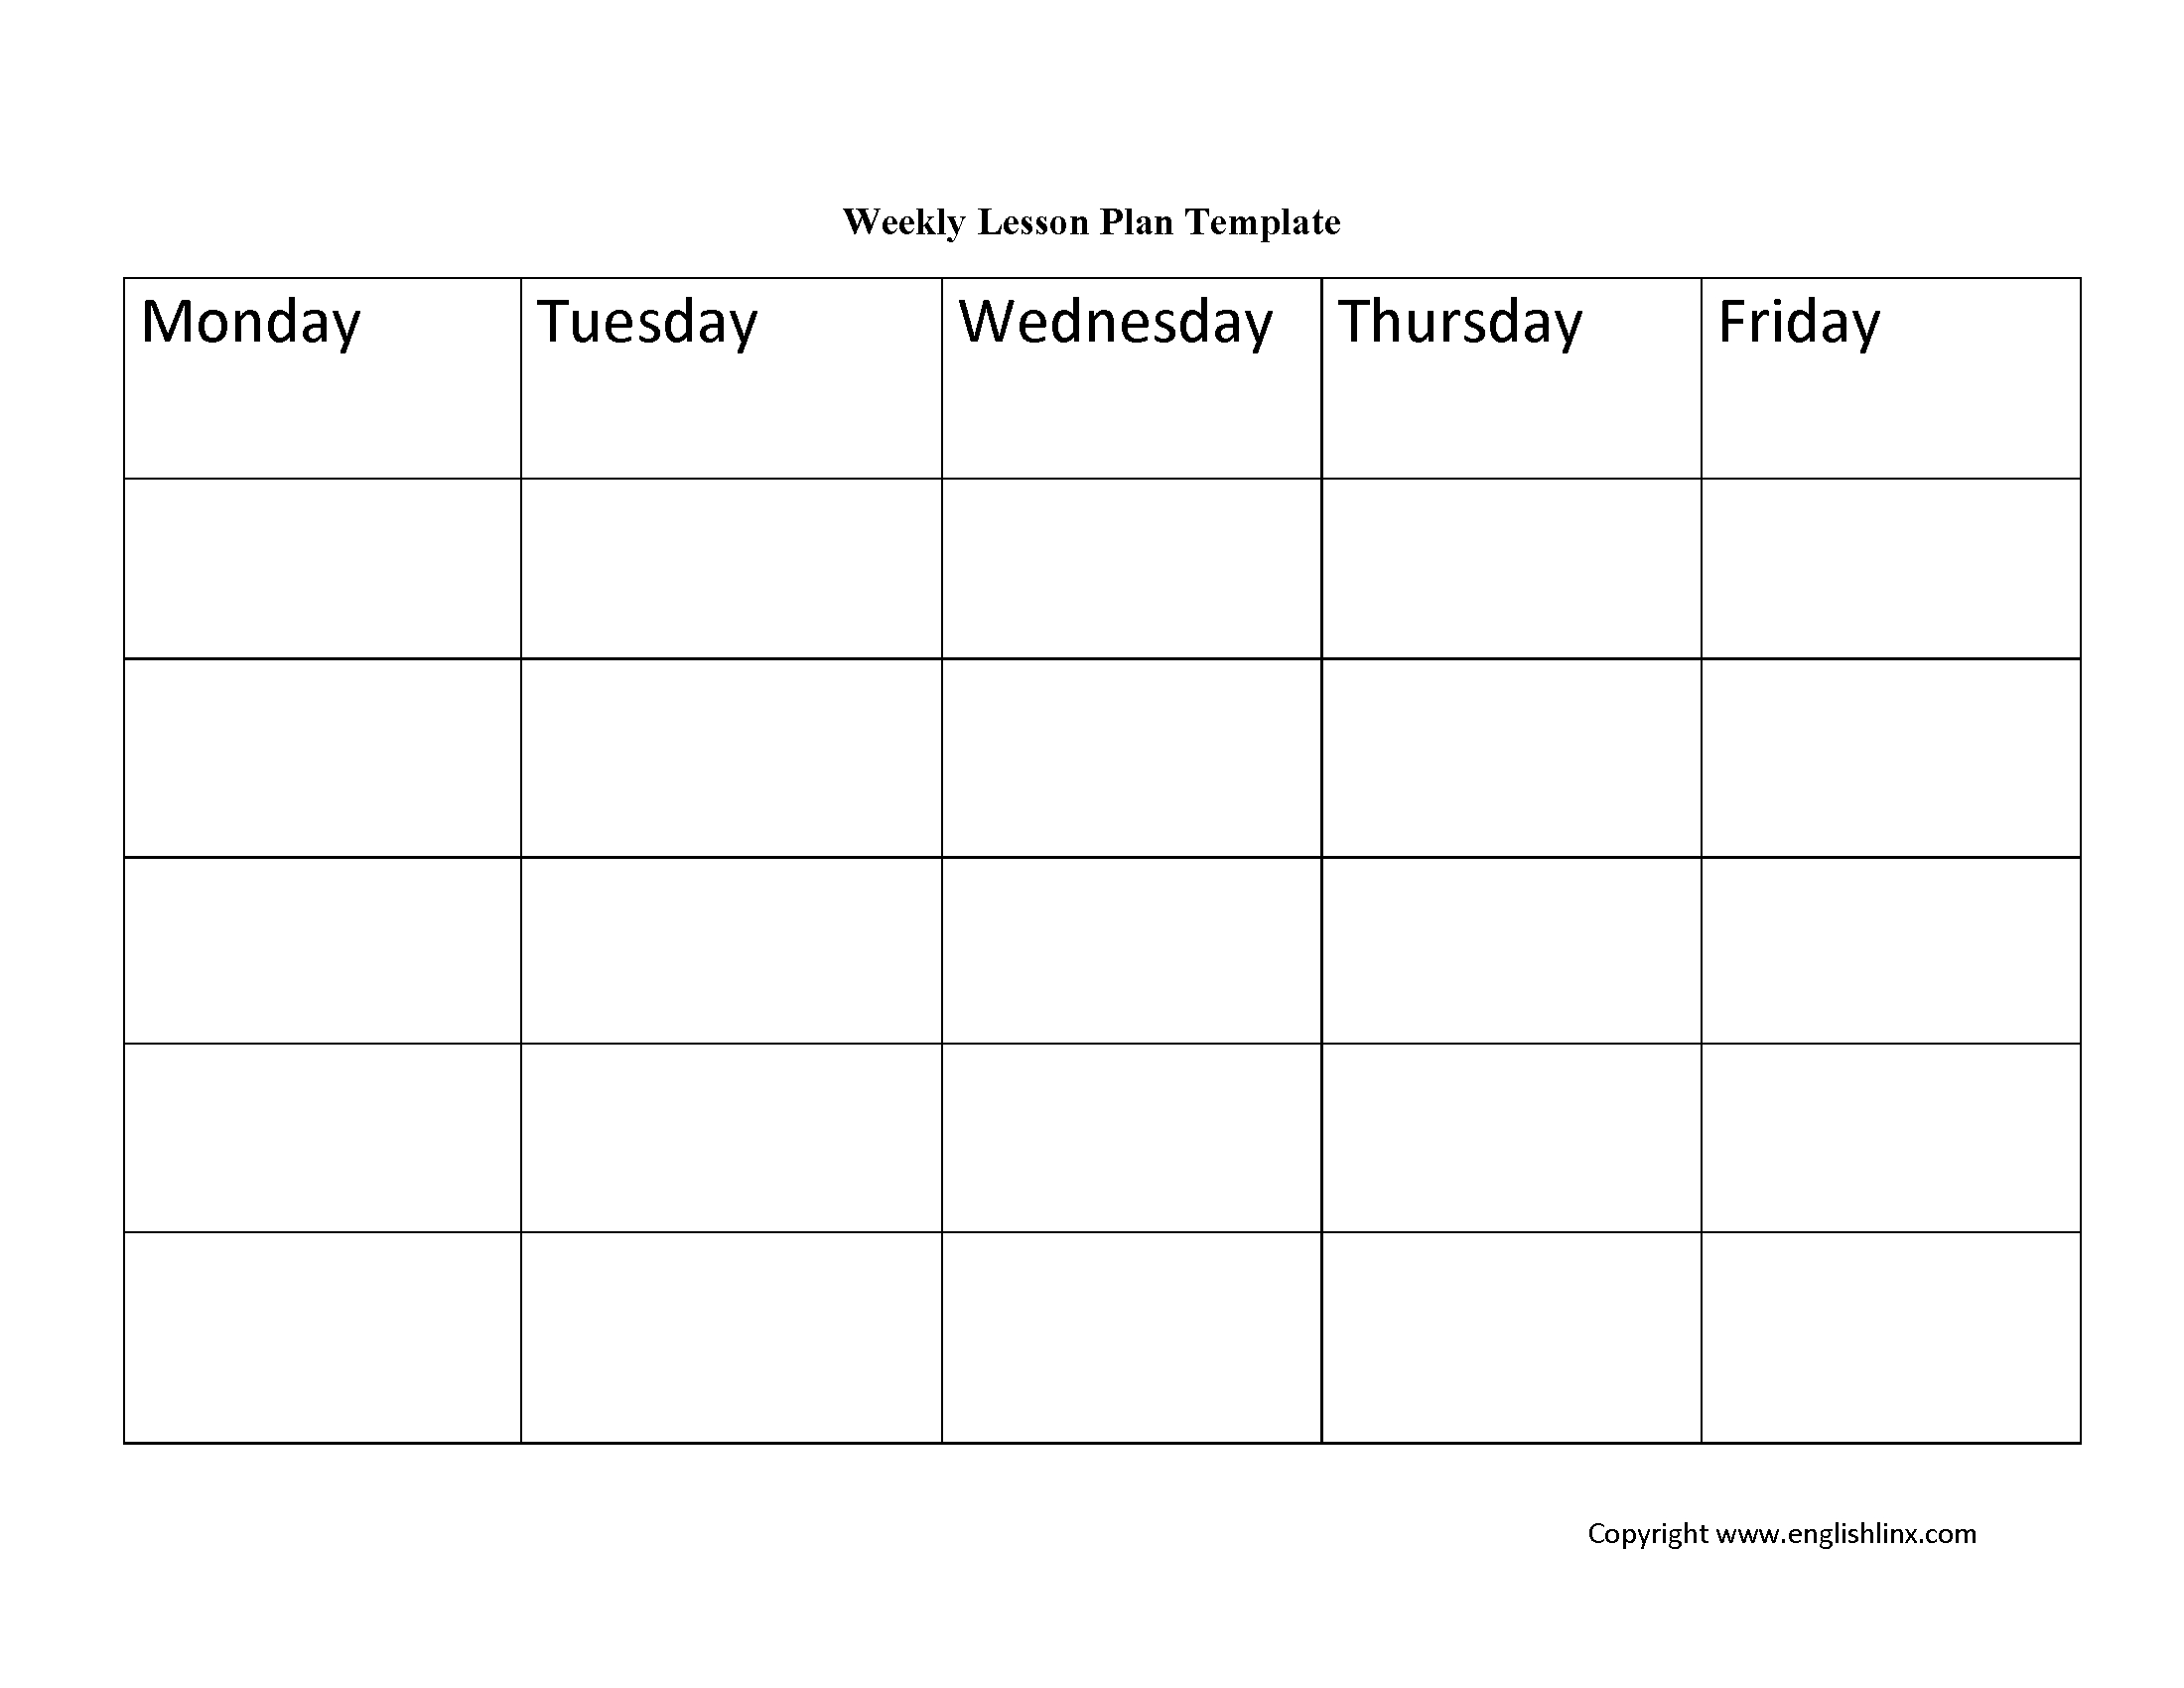 Lesson Plan Template | Weekly Lesson Plan Template-Weekly Lesson Plan Blank Template